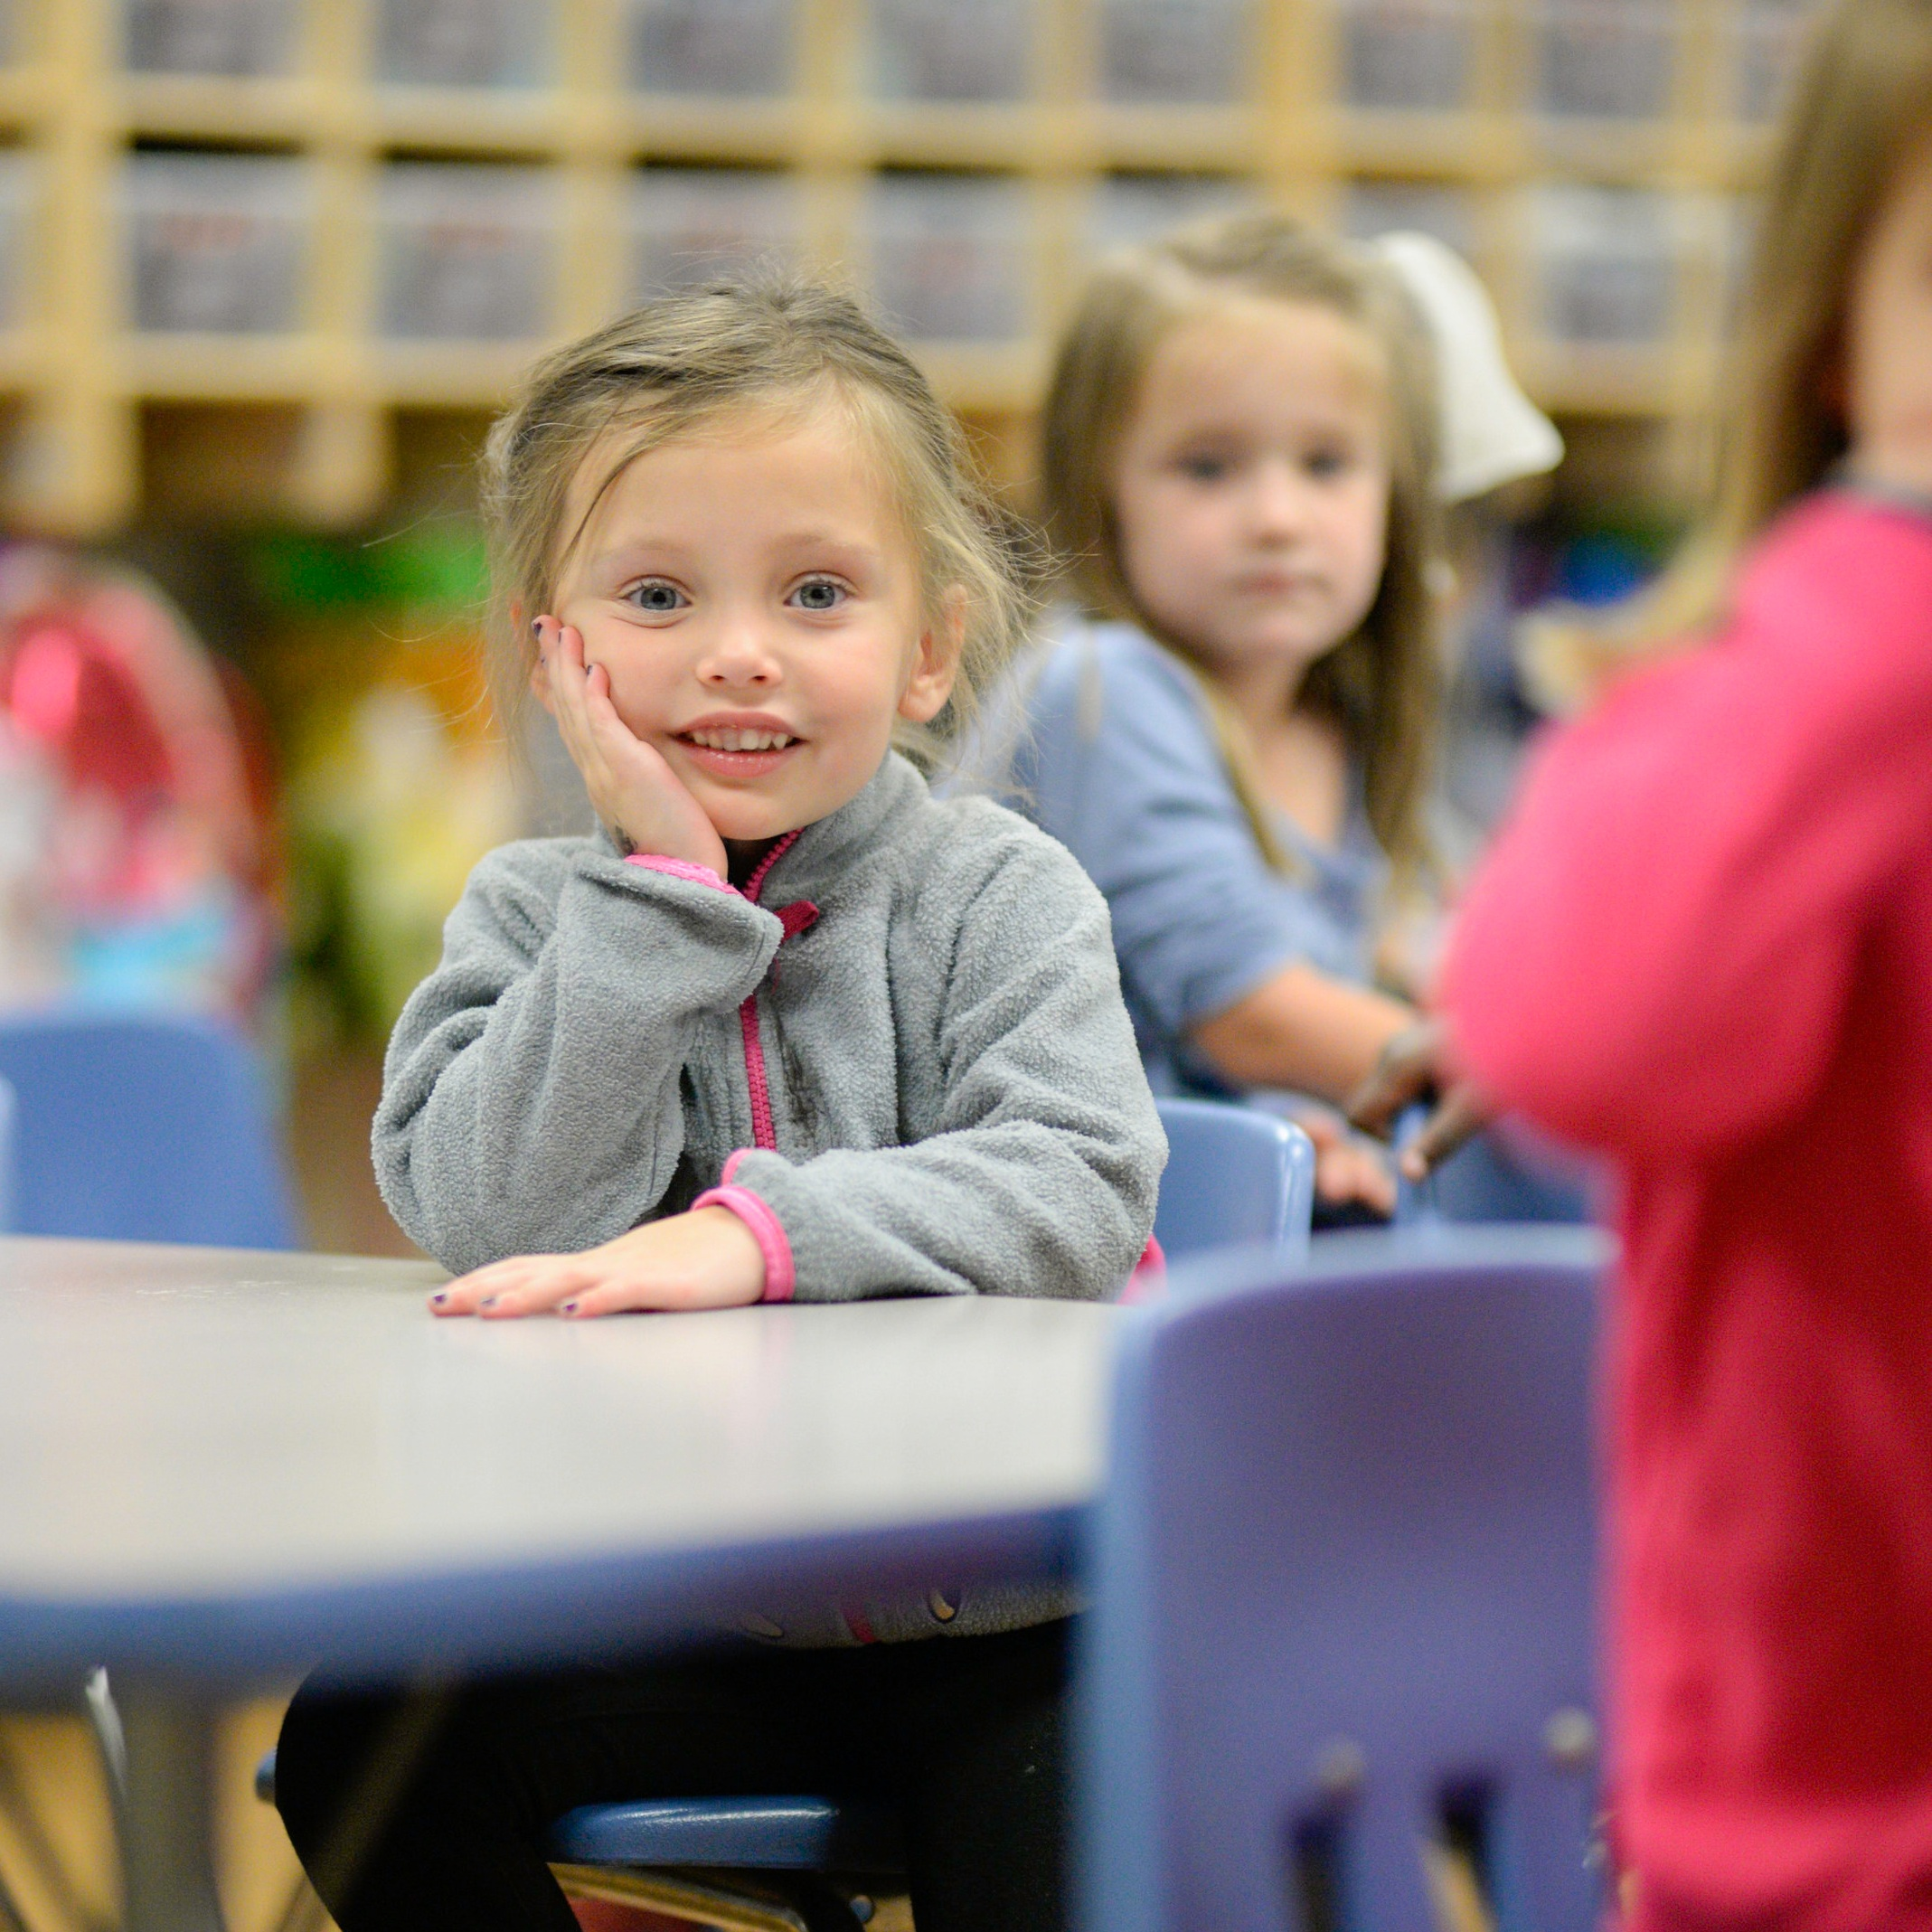 Preschool Care - In the following classrooms, mornings include a Bible lesson taught by the Director. Daily Bible class is a time both students and teachers look forward to and includes a Bible story, catechism, Bible memory verses, Bible songs, prayer and character trait lessons.